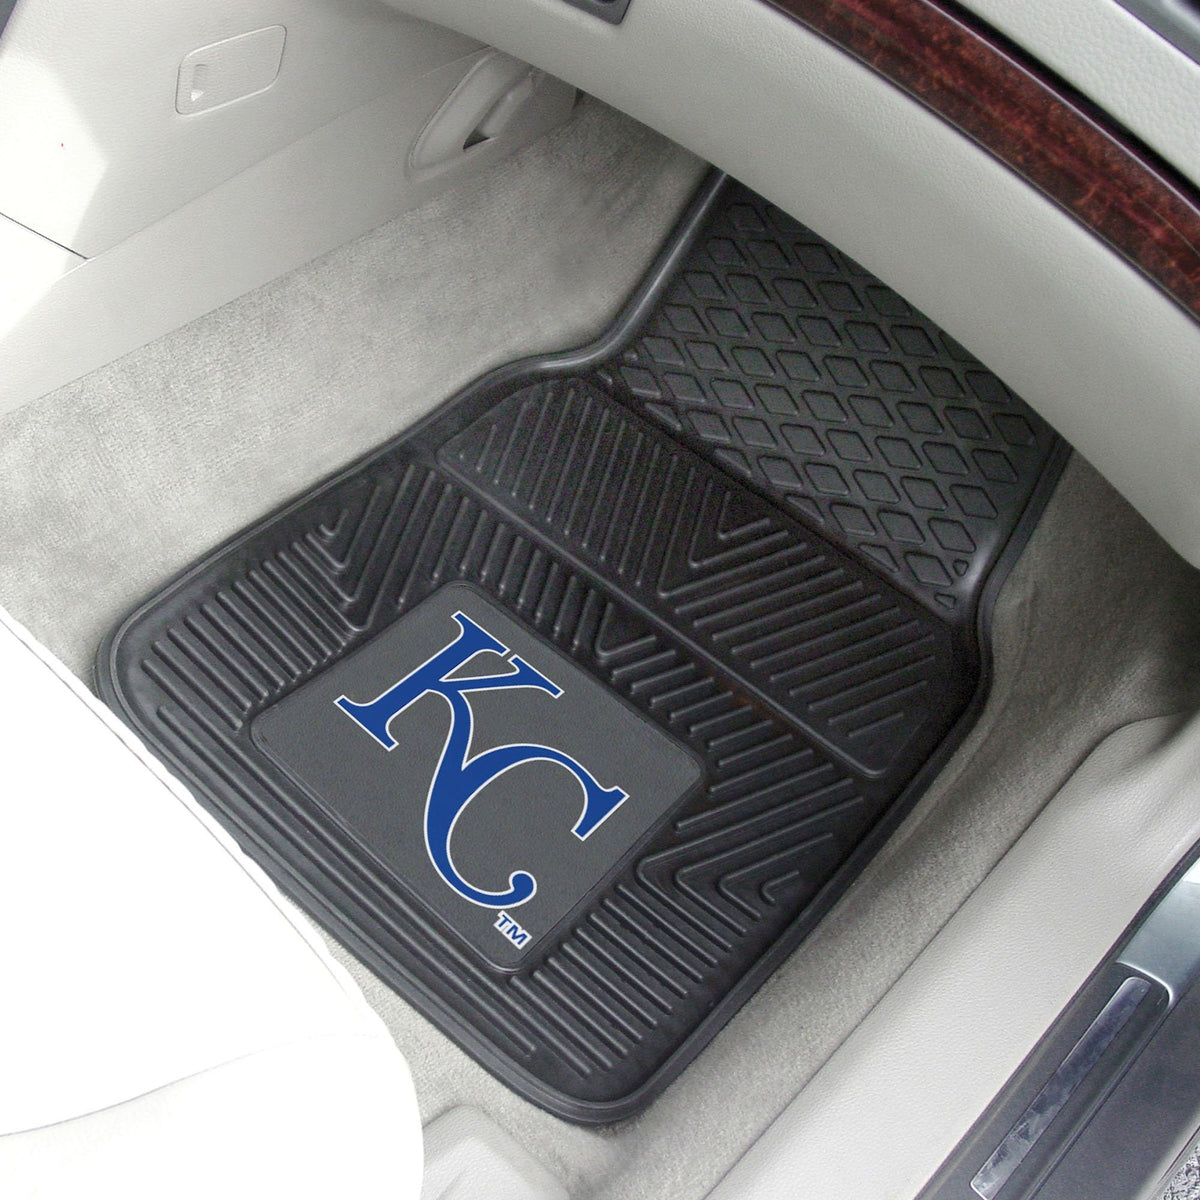 MLB - Vinyl Car Mat, 2-Piece Set MLB Mats, Front Car Mats, 2-pc Vinyl Car Mat Set, MLB, Auto Fan Mats Kansas City Royals